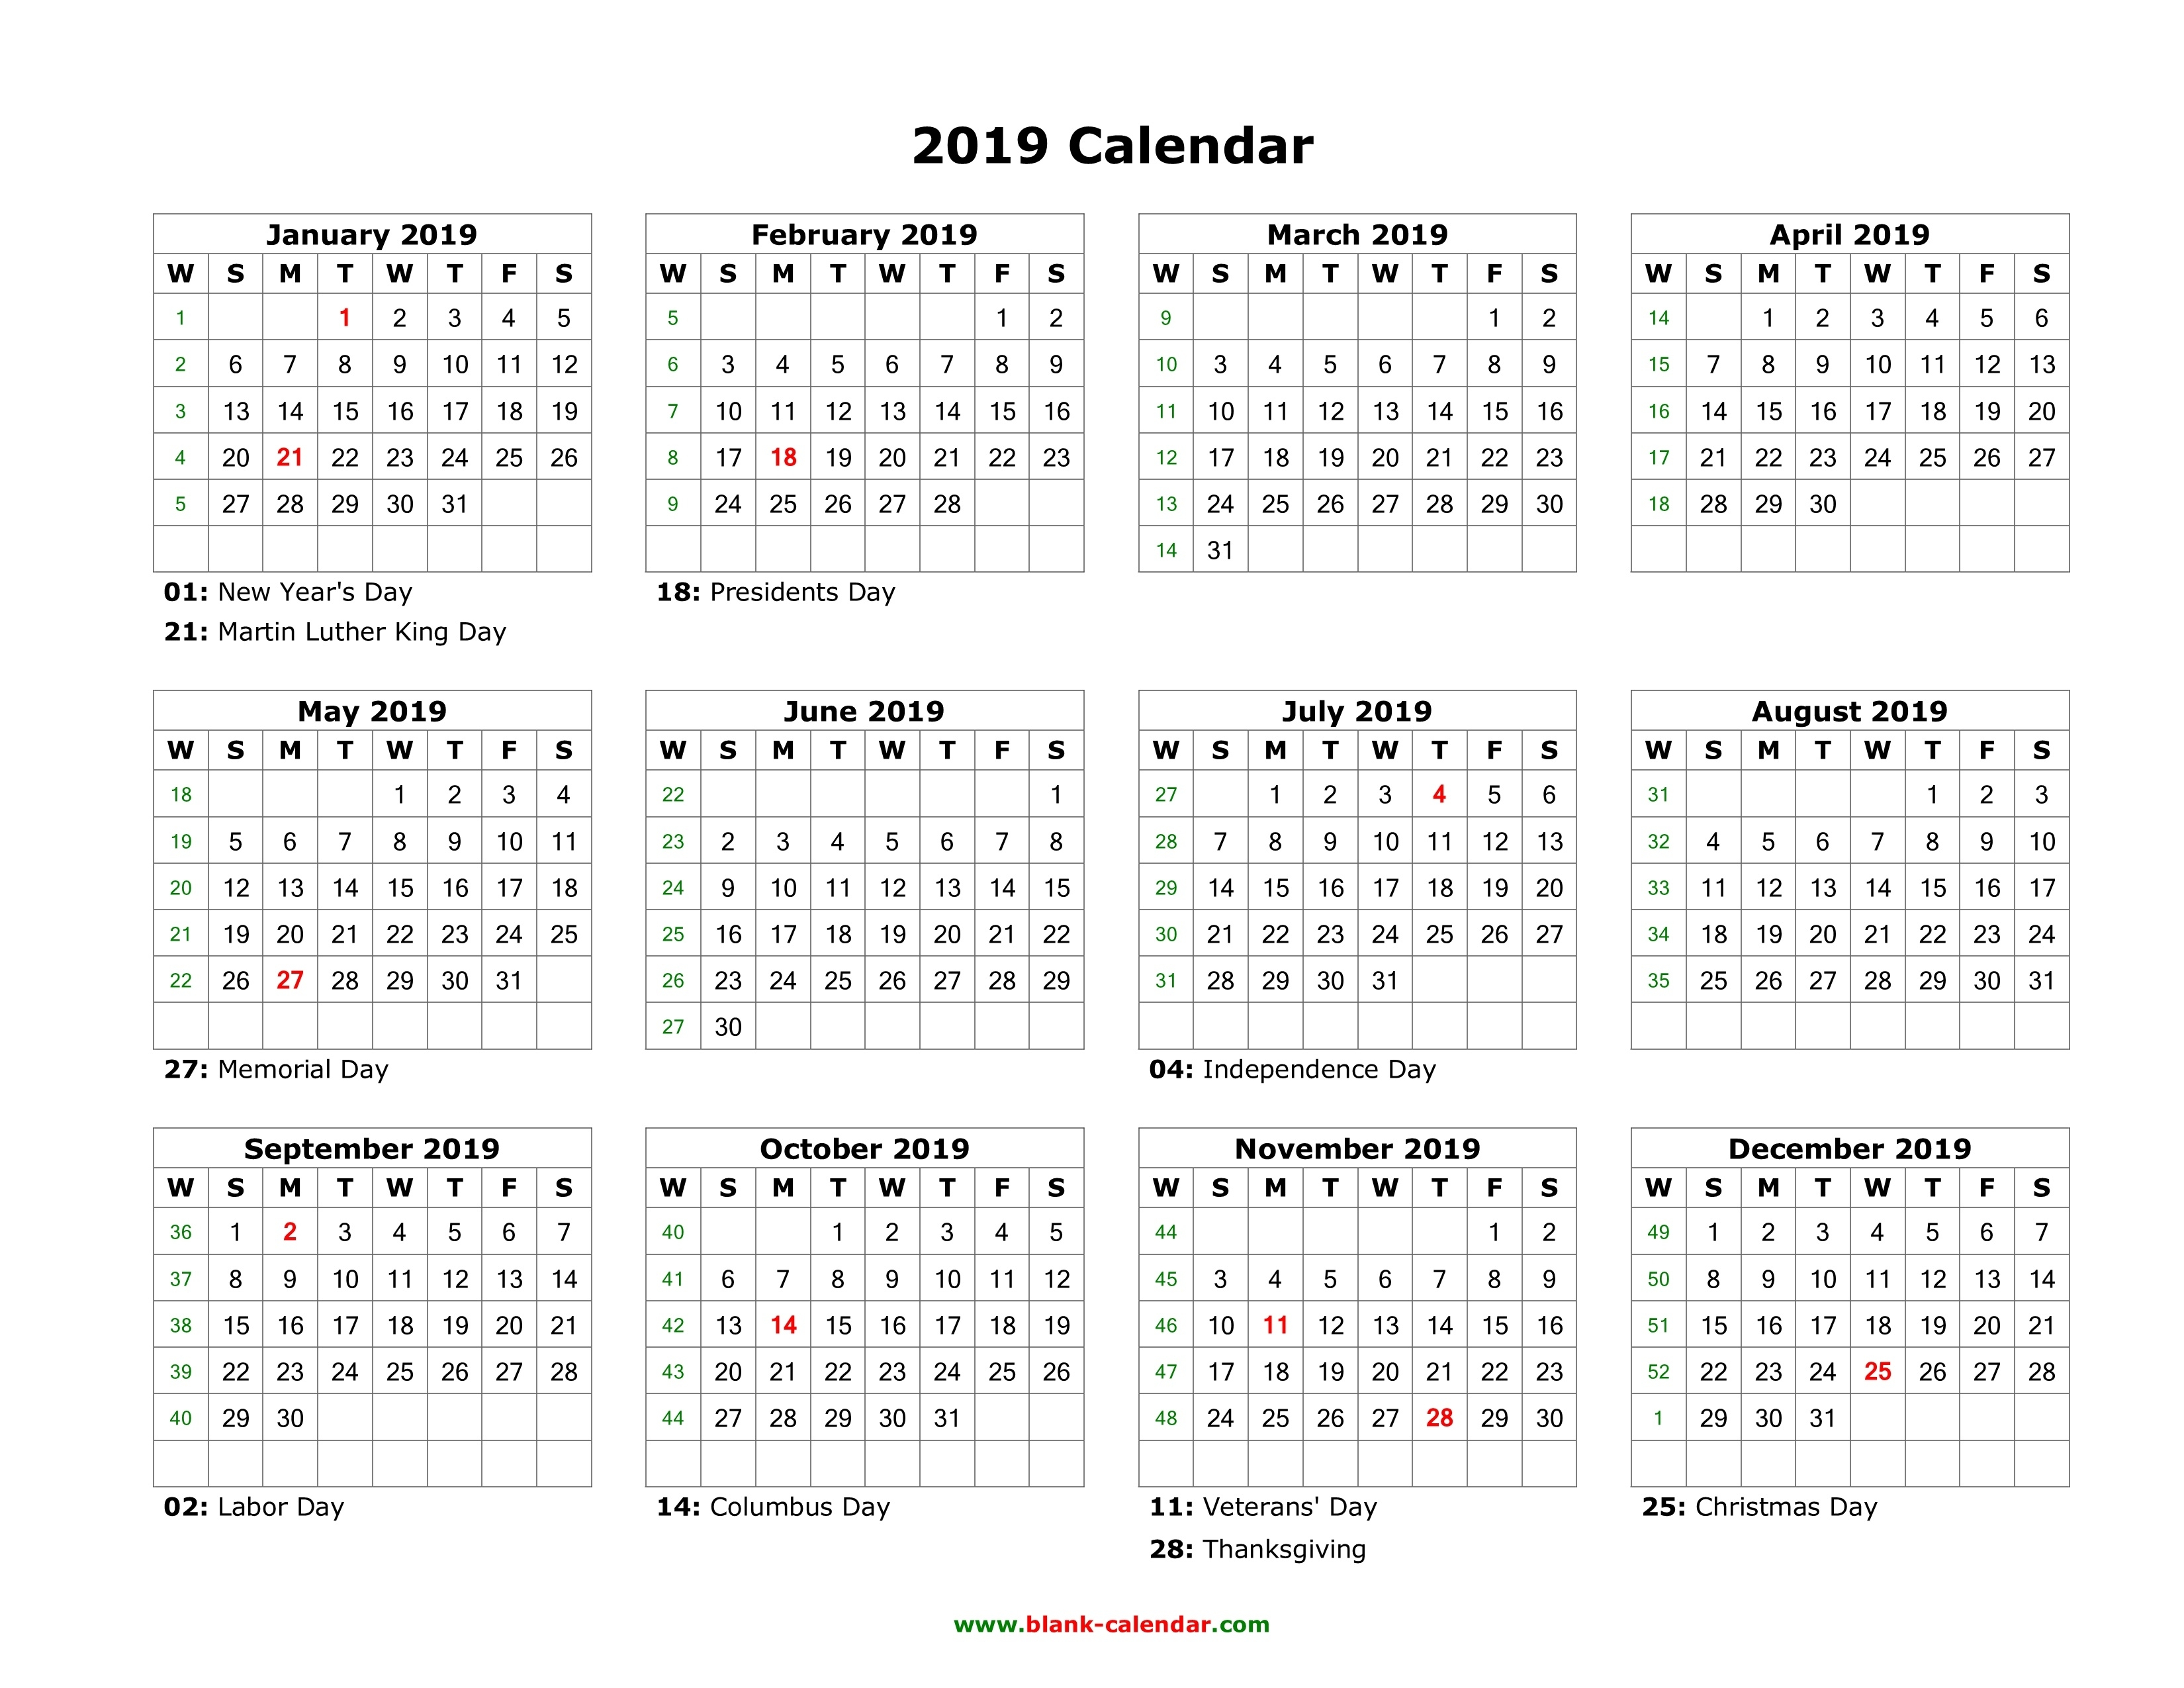 Download Blank Calendar 2019 With Us Holidays (12 Months On One Page_Blank Calendar With Holidays